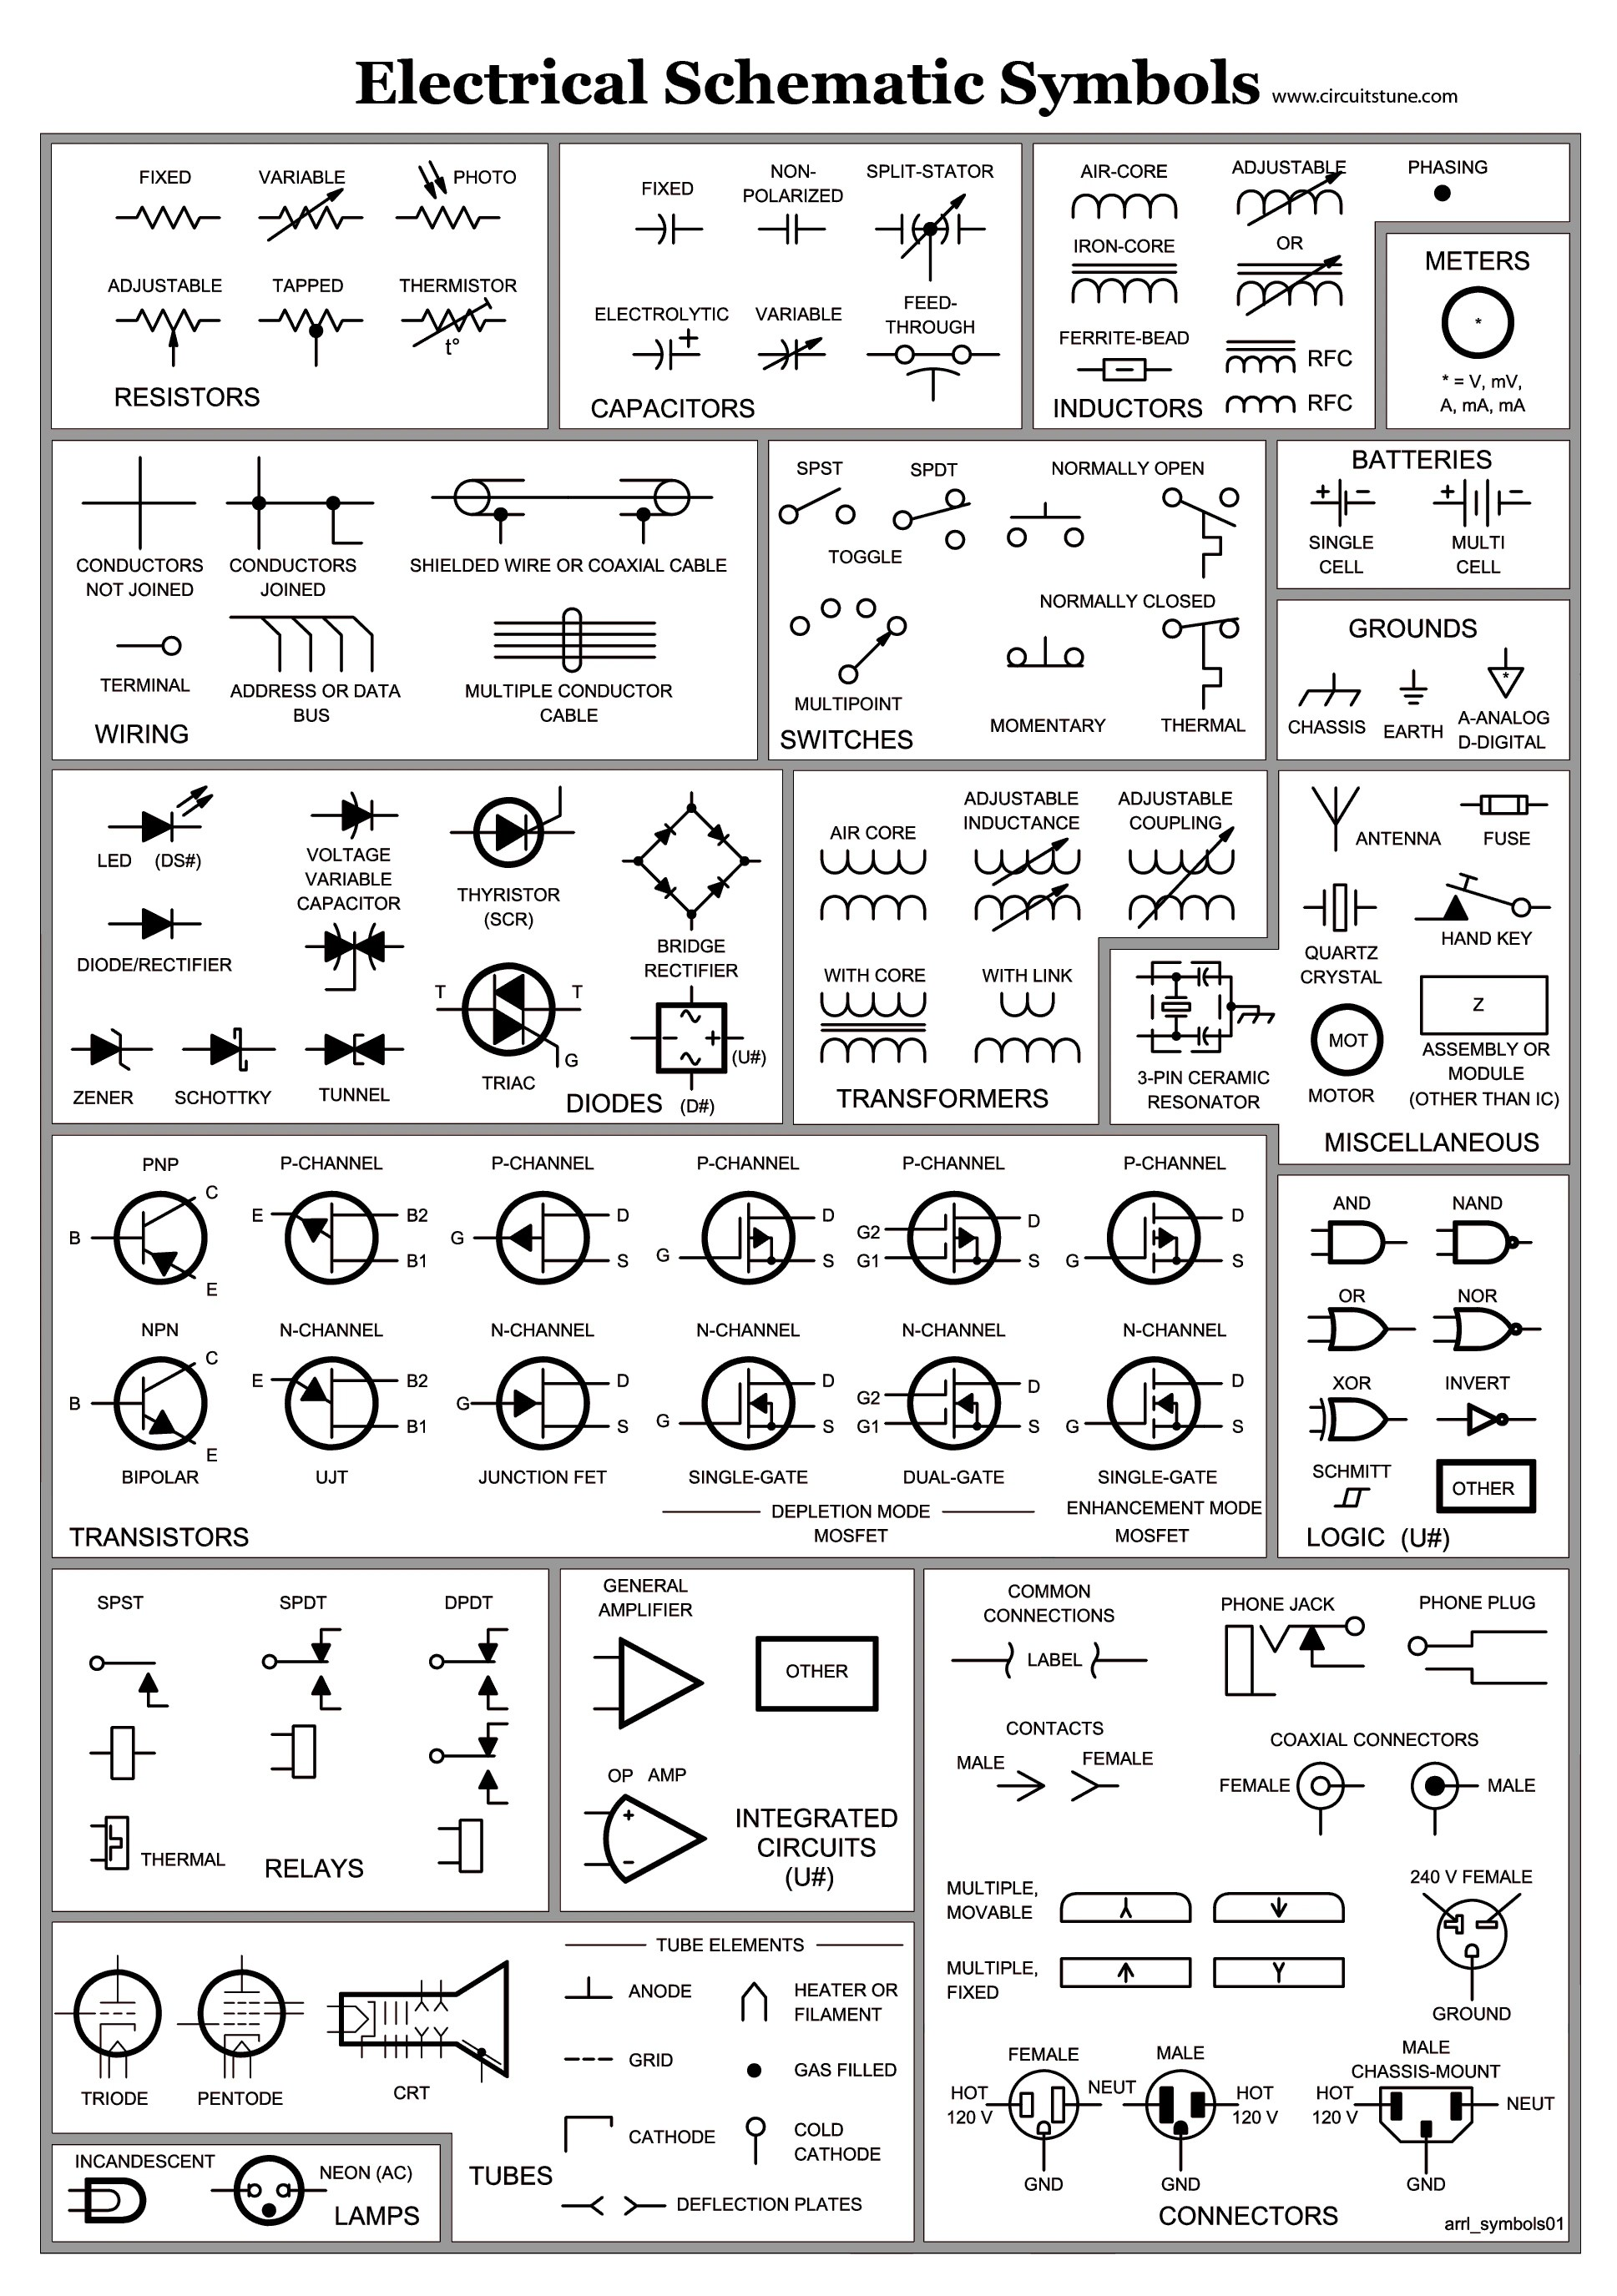 symbols used in electrical wiring diagrams wiring diagrams circuit diagrams electrical diagram symbol electrical diagram symbol [ 1937 x 2751 Pixel ]